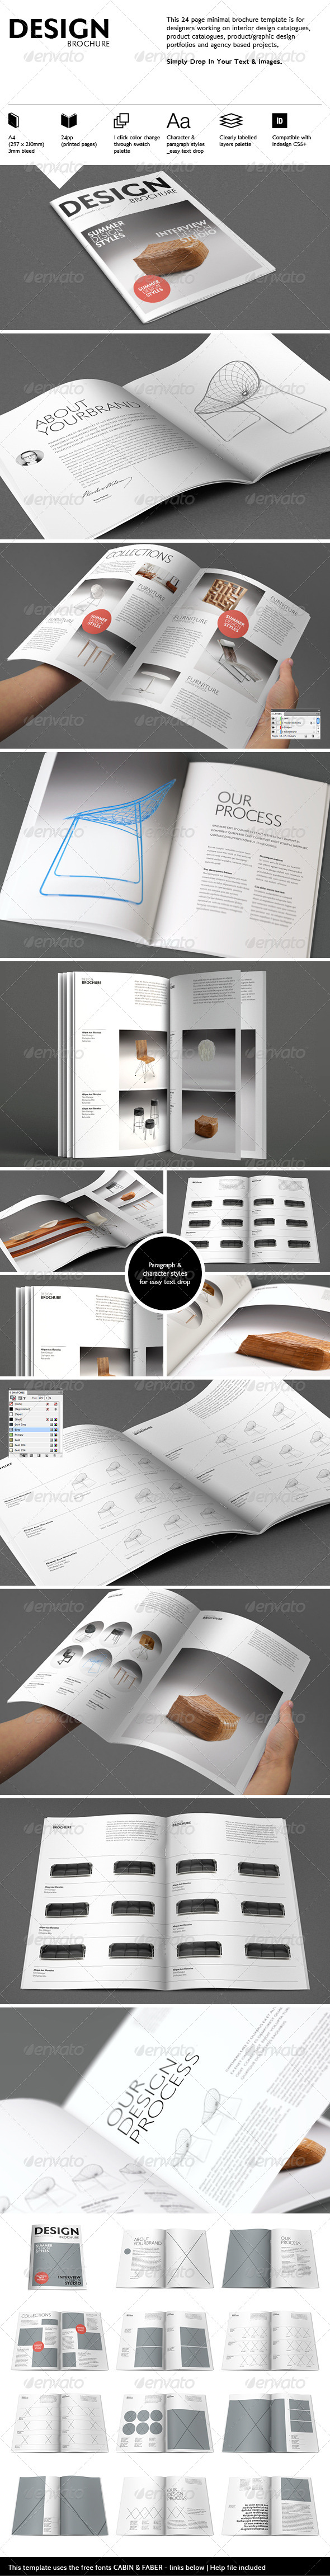 interiors-brochure-template